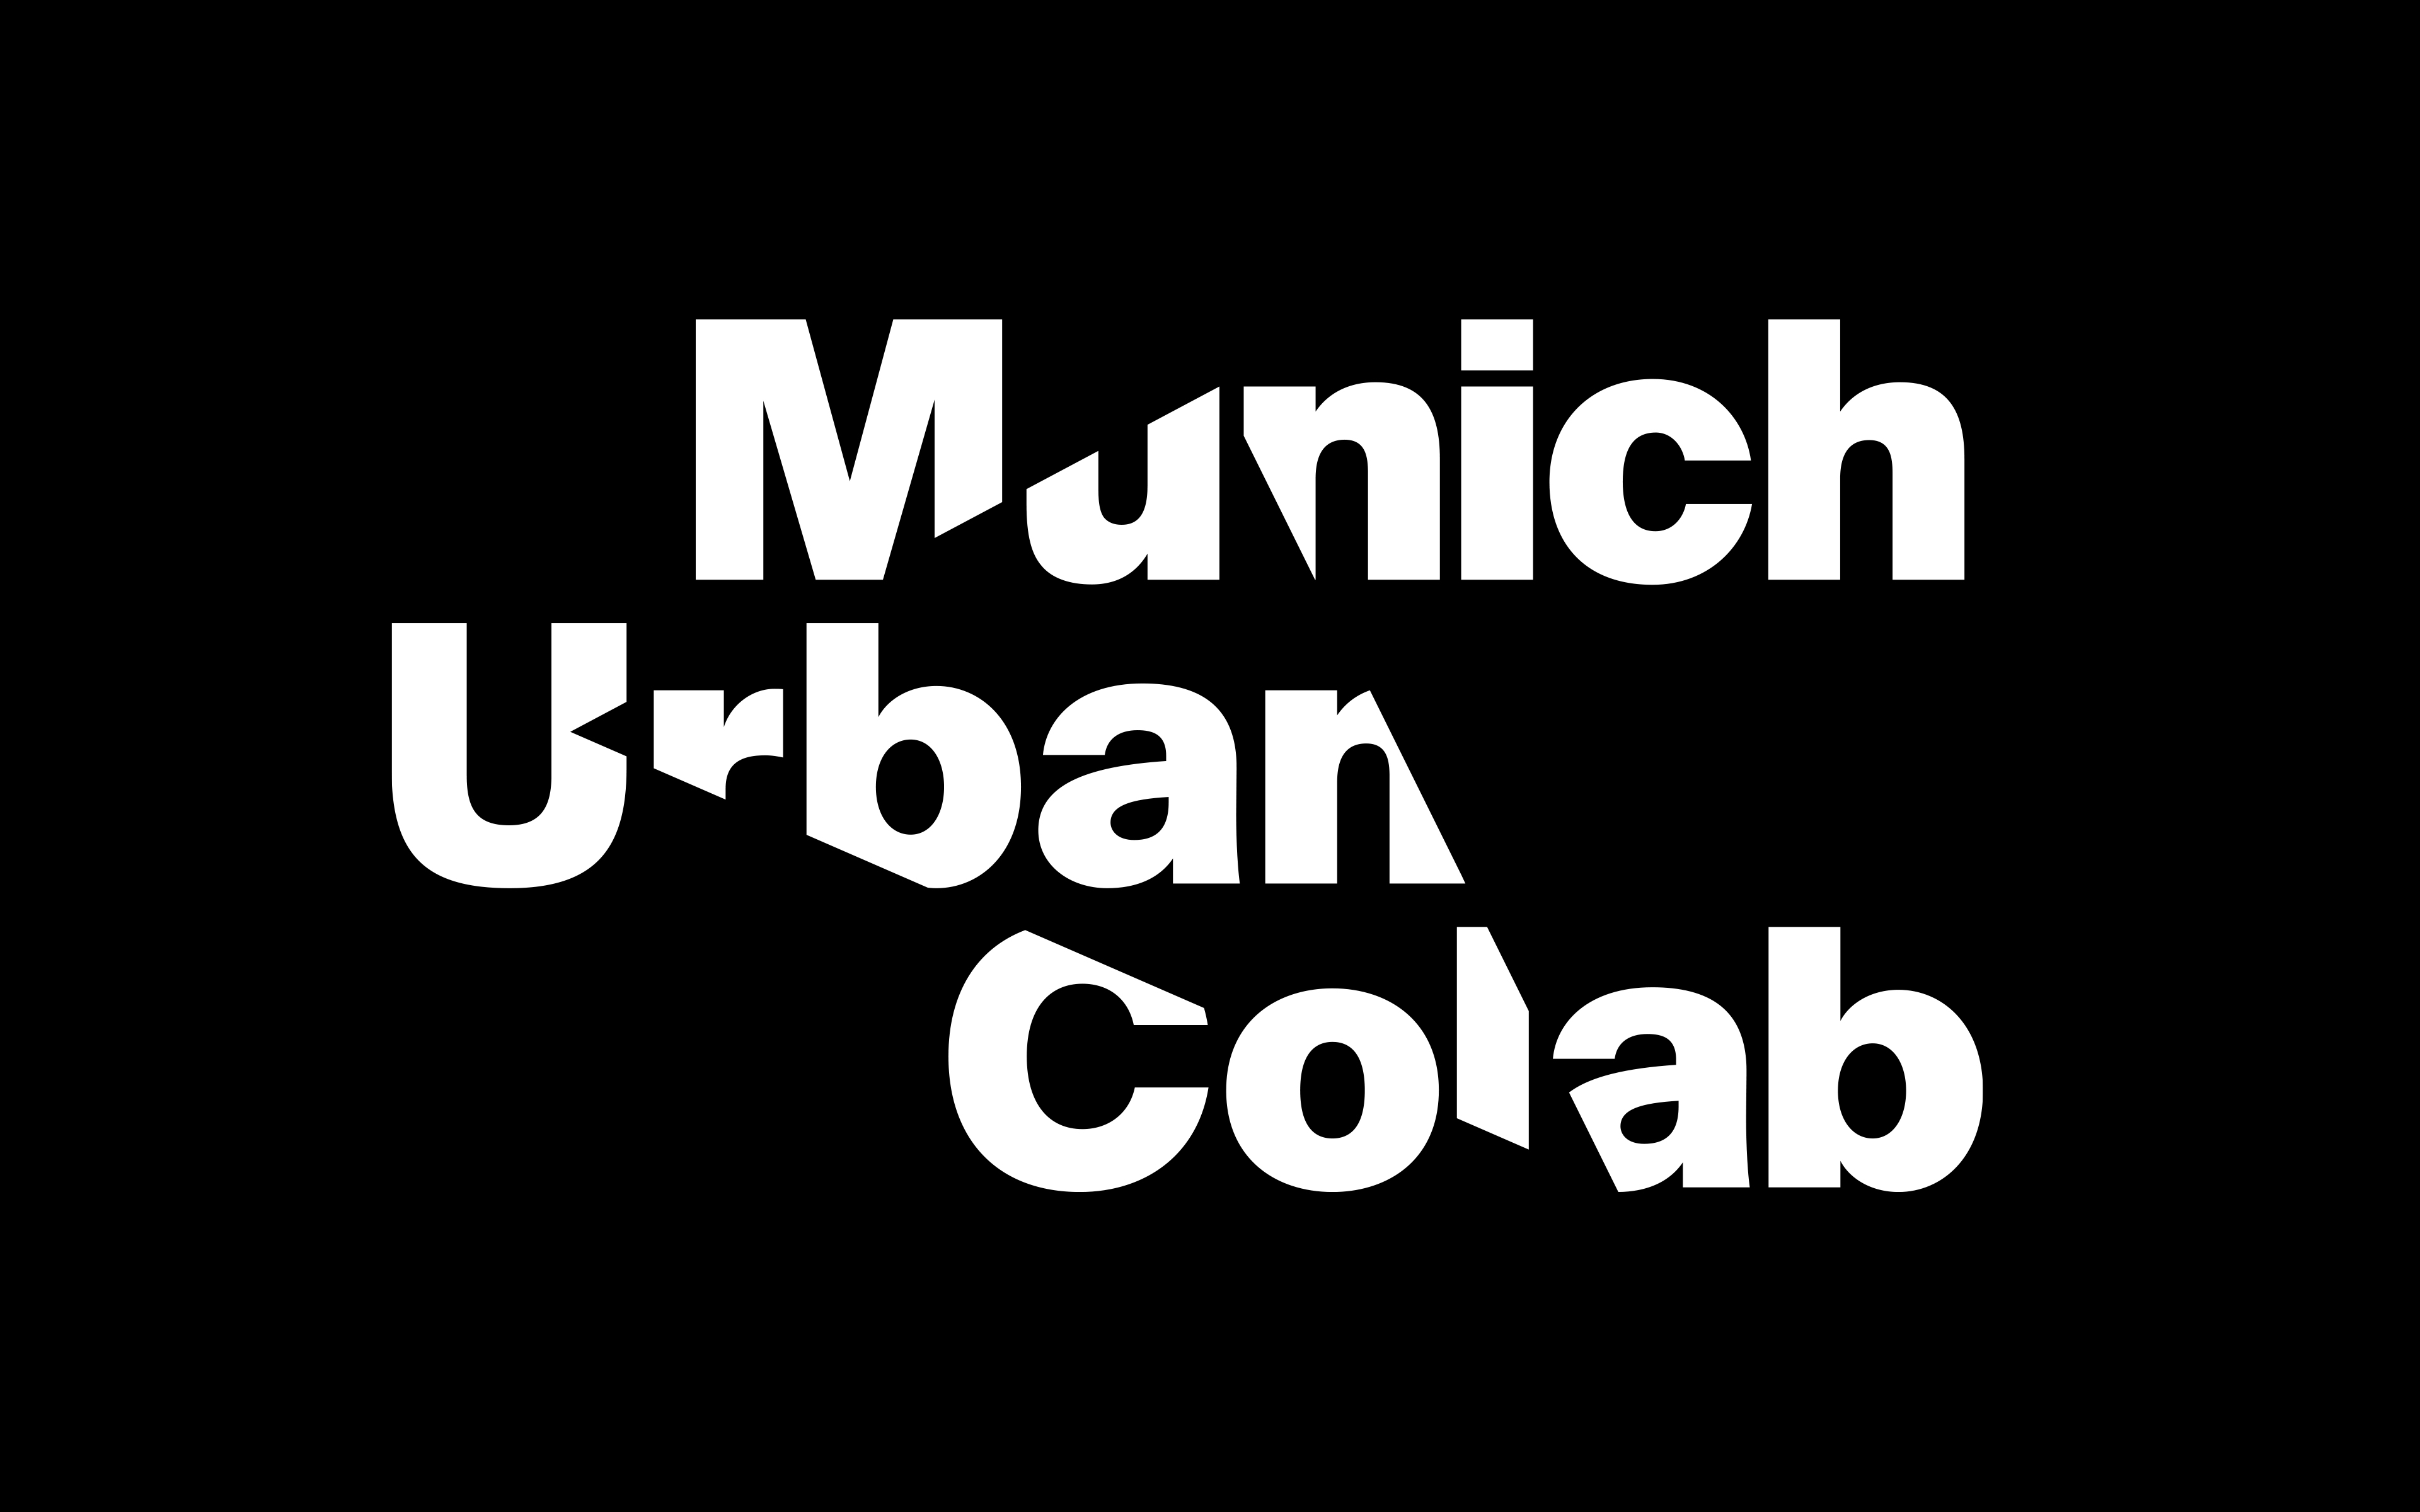 The picture shows the logo of the Munich Urban Colab.